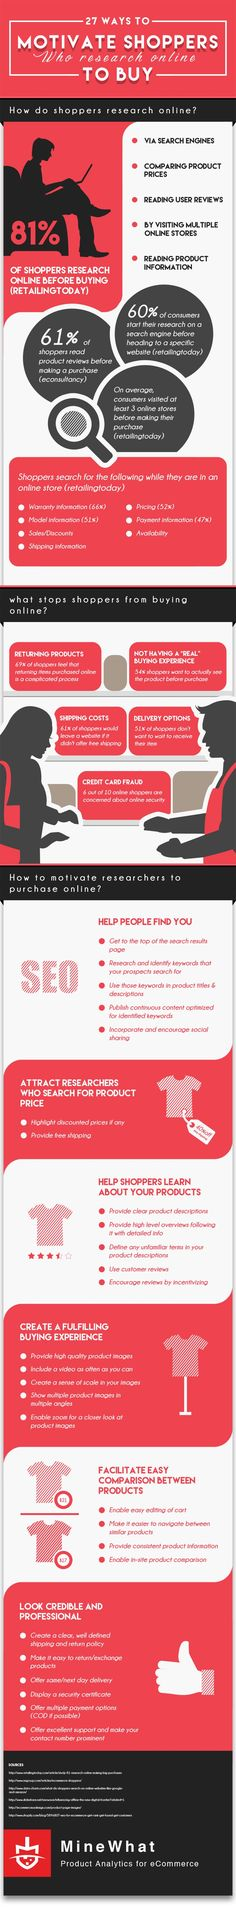 Infographic: 27 Ways To Motivate Shoppers Who Research Online To Buy: of shoppers research online before making a purchase. Find out what stops them from buying online and what you can do to motivate them to buy. Digital Marketing Trends, Business Marketing, Content Marketing, Online Marketing, Social Media Marketing, Online Business, Marketing News, Business Infographics, Mobile Marketing